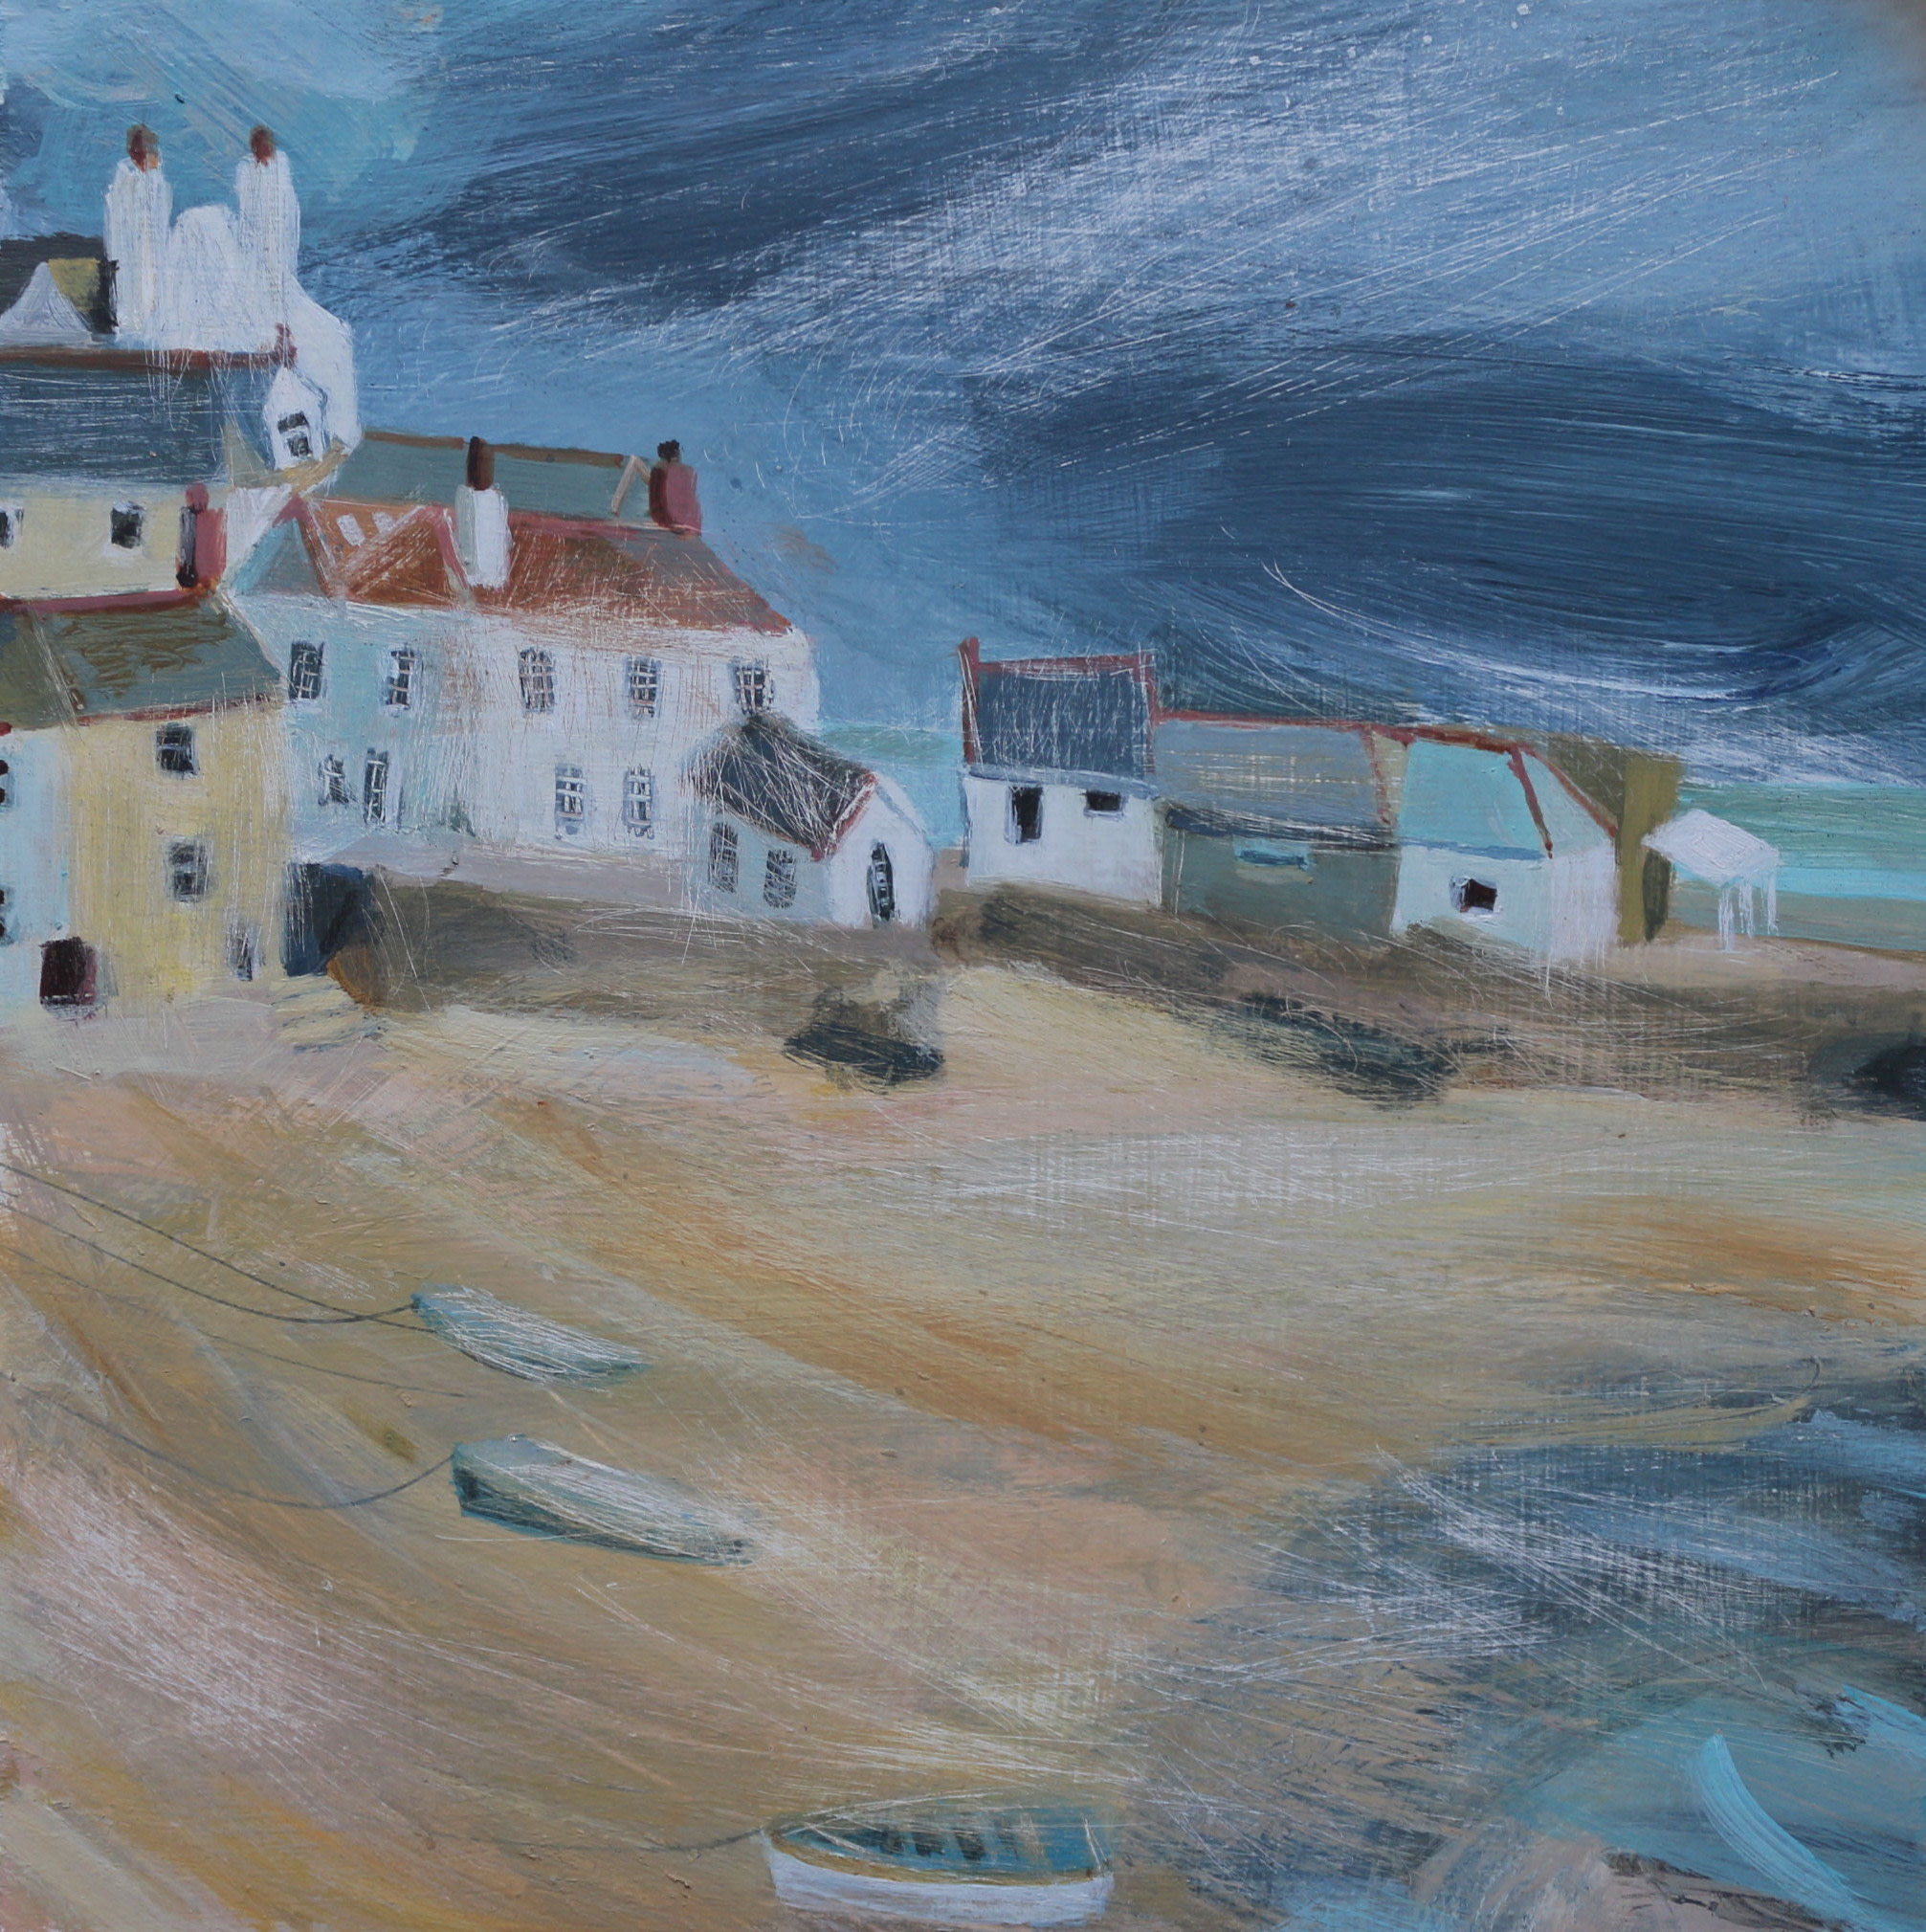 <span class=&#34;link fancybox-details-link&#34;><a href=&#34;/artists/177-jane-askey/works/5510-jane-askey-weather-approaching-st-ives-harbour-2018/&#34;>View Detail Page</a></span><div class=&#34;artist&#34;><strong>Jane Askey</strong></div> <div class=&#34;title&#34;><em>Weather Approaching St Ives Harbour</em>, 2018</div> <div class=&#34;signed_and_dated&#34;>signed</div> <div class=&#34;medium&#34;>mixed media on gesso board</div> <div class=&#34;dimensions&#34;>49 x 49 cm<br /> 19 1/4 x 19 1/4 inches</div><div class=&#34;copyright_line&#34;>OwnArt: £ 55 x 10 Months, 0% APR</div>